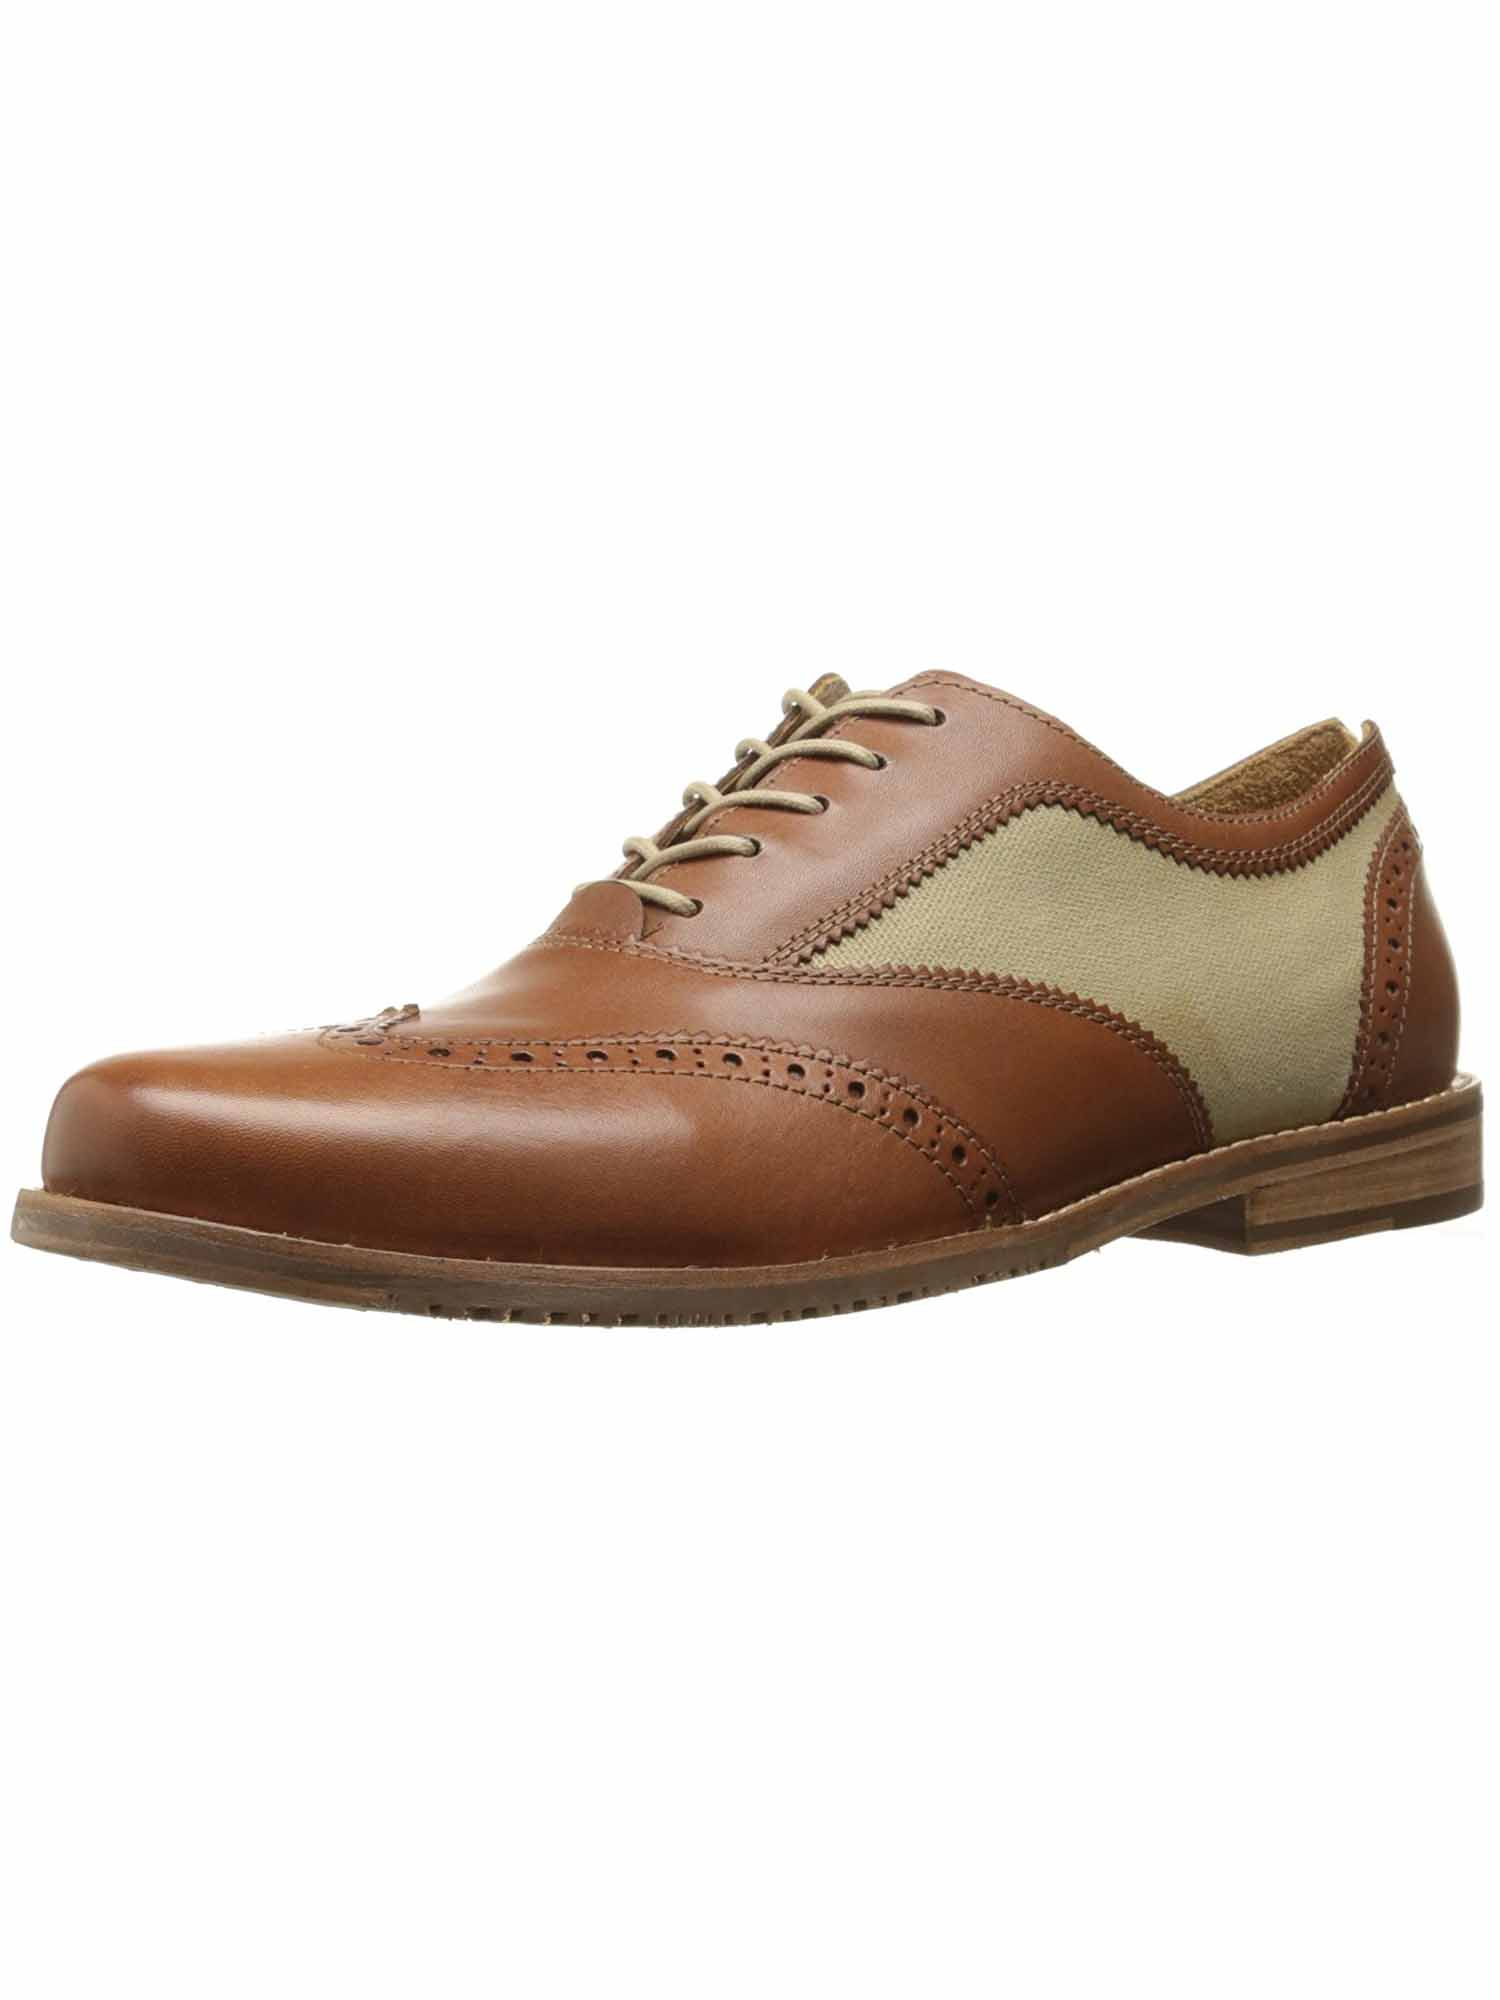 Tommy Bahama Mens Felman Wingtip Oxford Shoes (Whiskey, 8.5) by